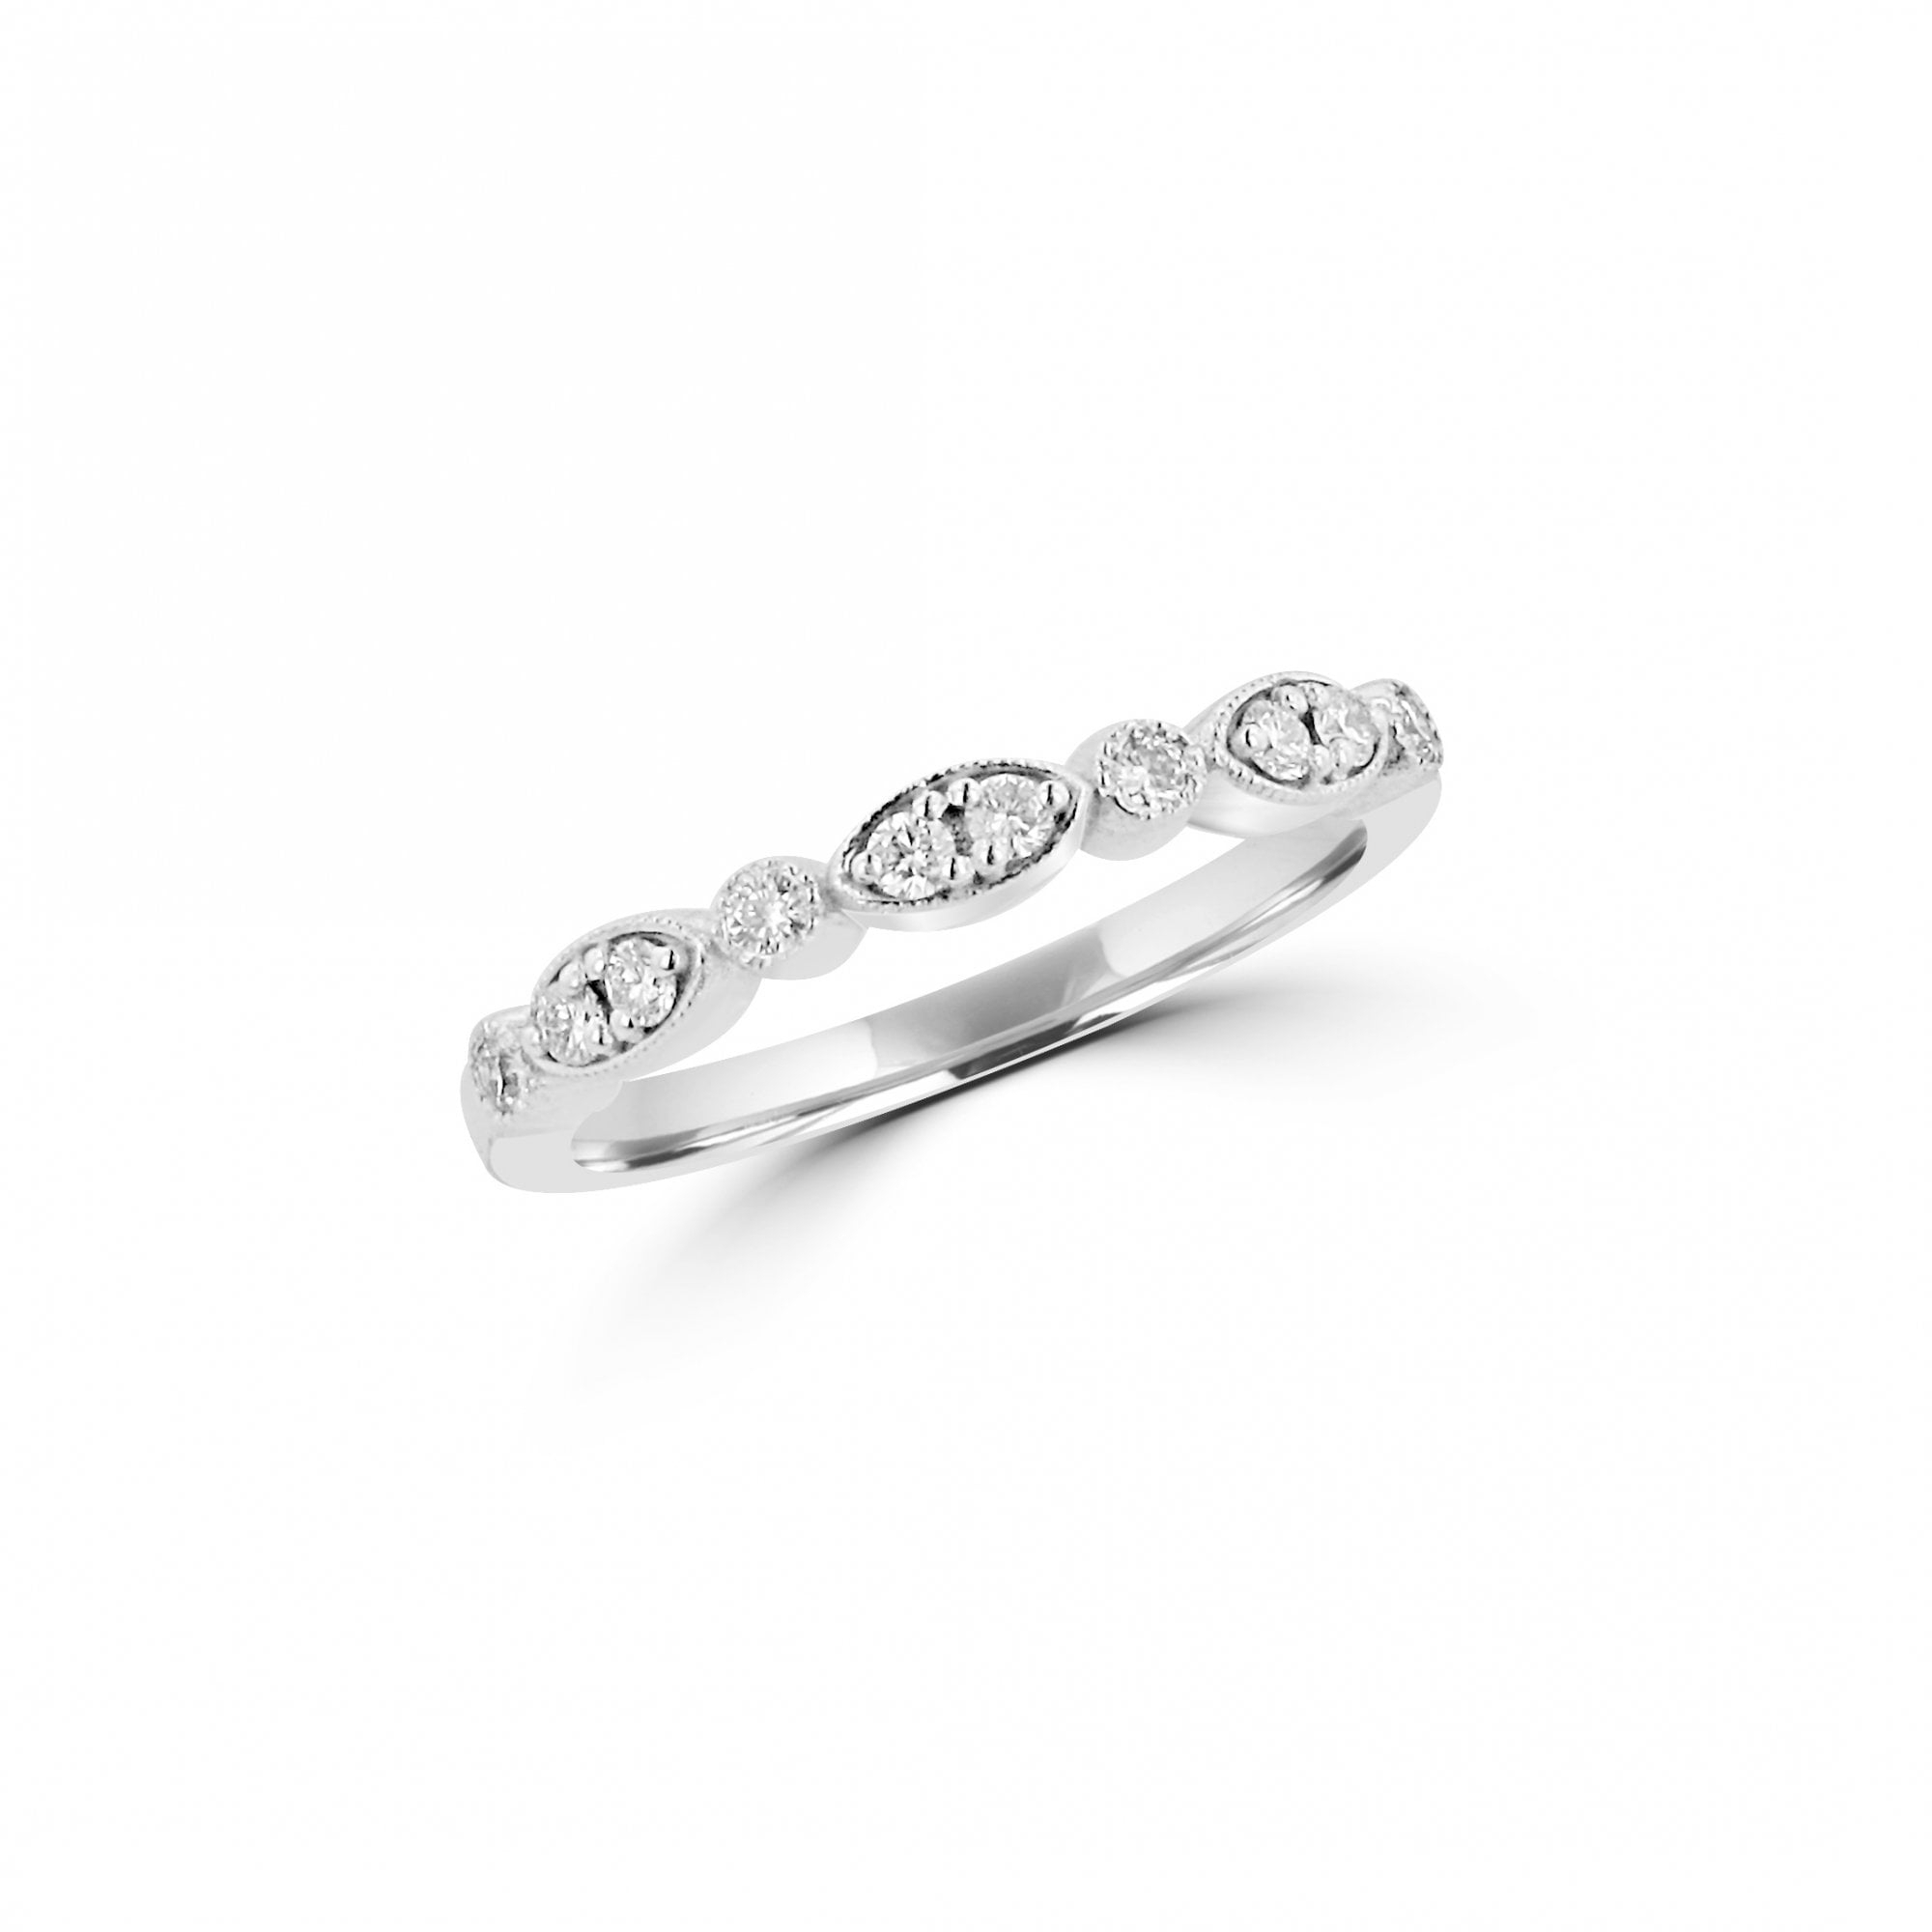 18ct White Gold Vintage Inspired Delicate Diamond Band Ring With Milgrain Edge Within Most Current Diamond Art Deco Inspired Anniversary Bands In White Gold (View 18 of 25)